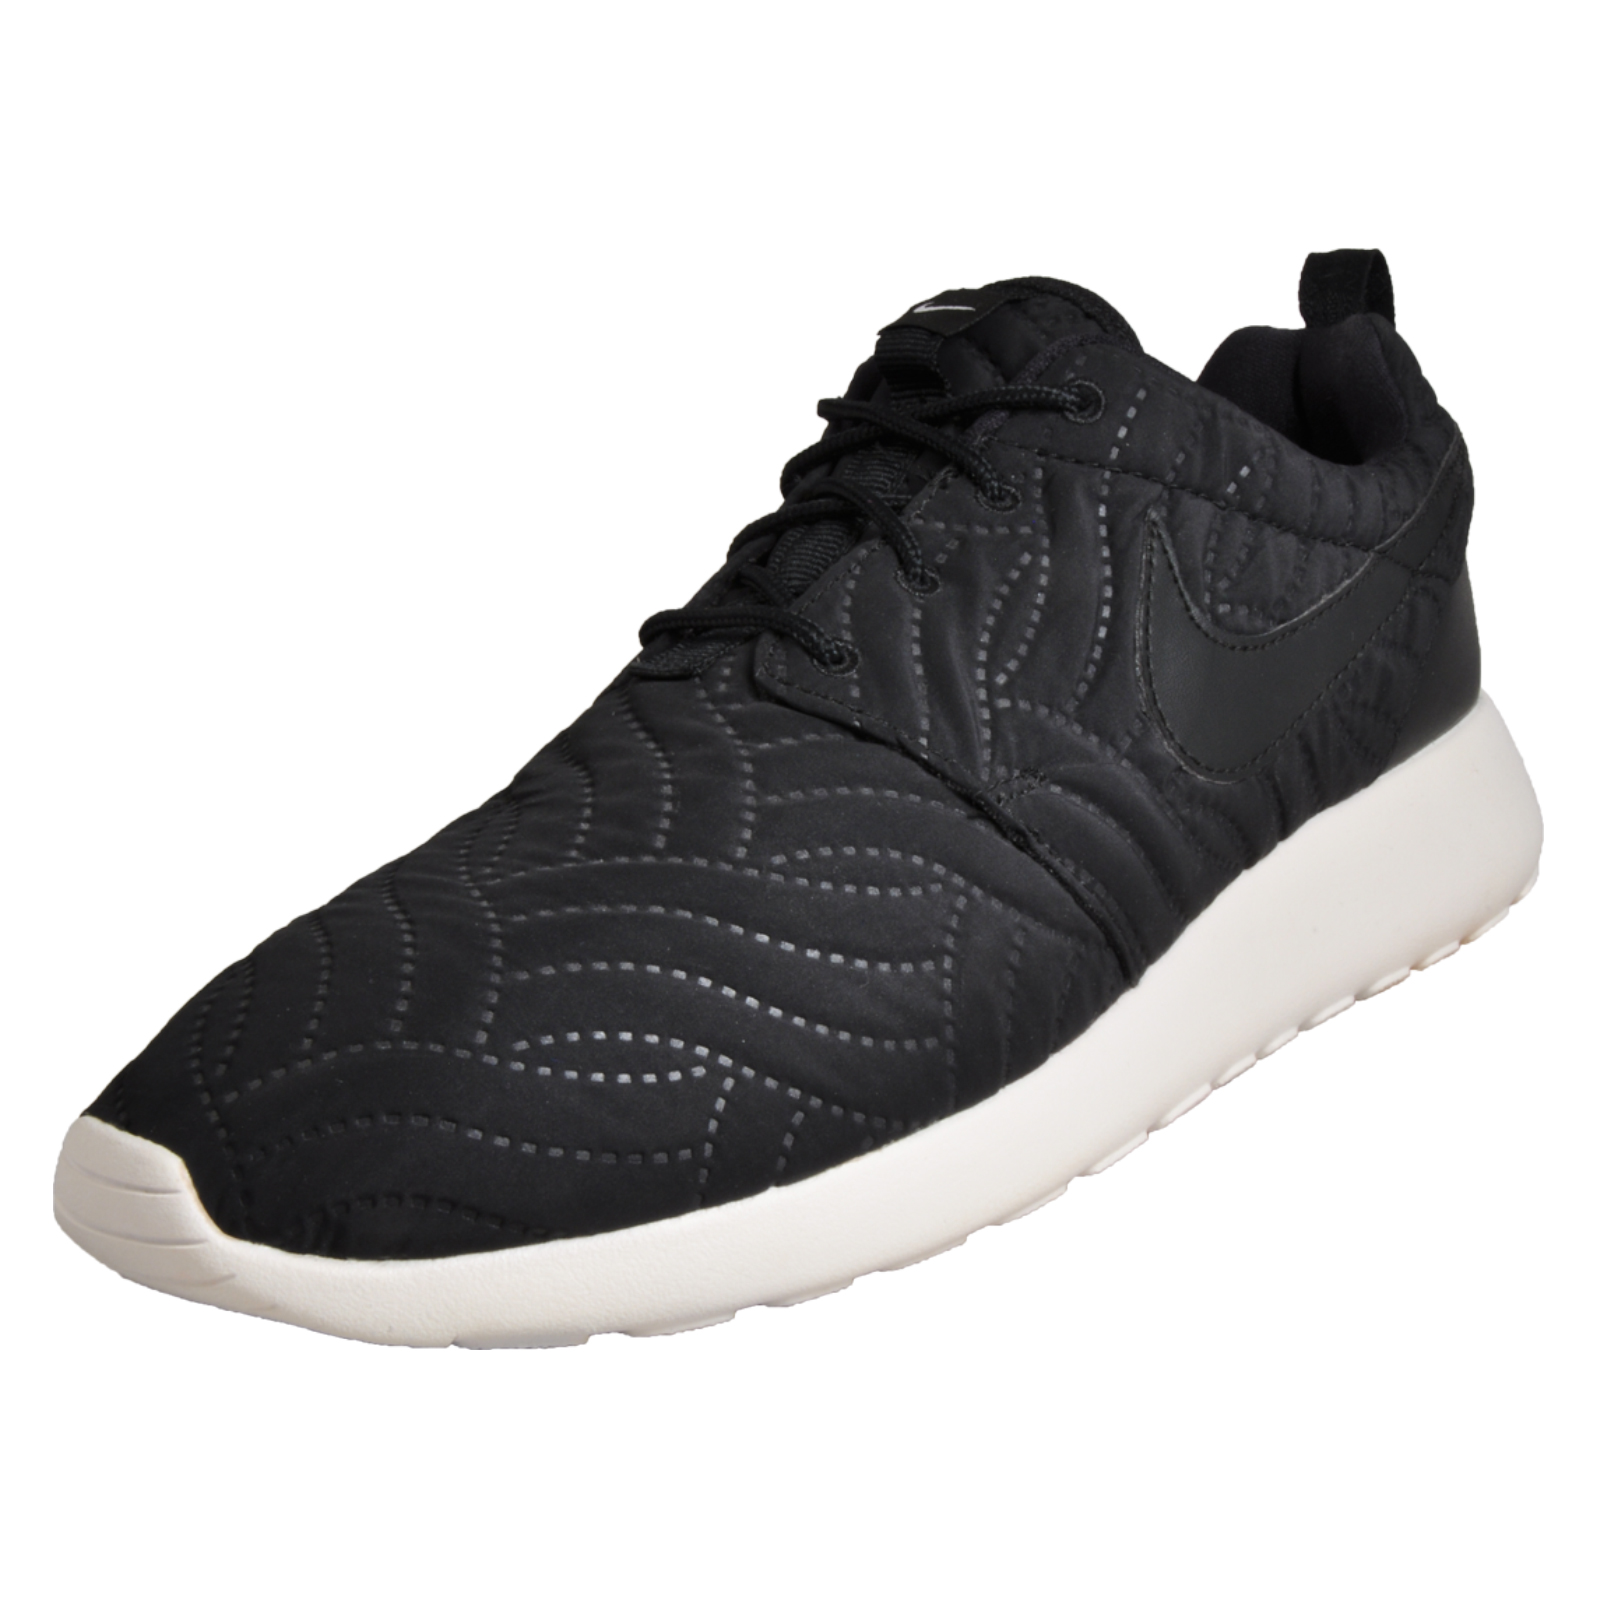 sale retailer c1753 da7eb Details about Nike Roshe One Premium Womens Shoes Casual Gym Fashion  Trainers Black